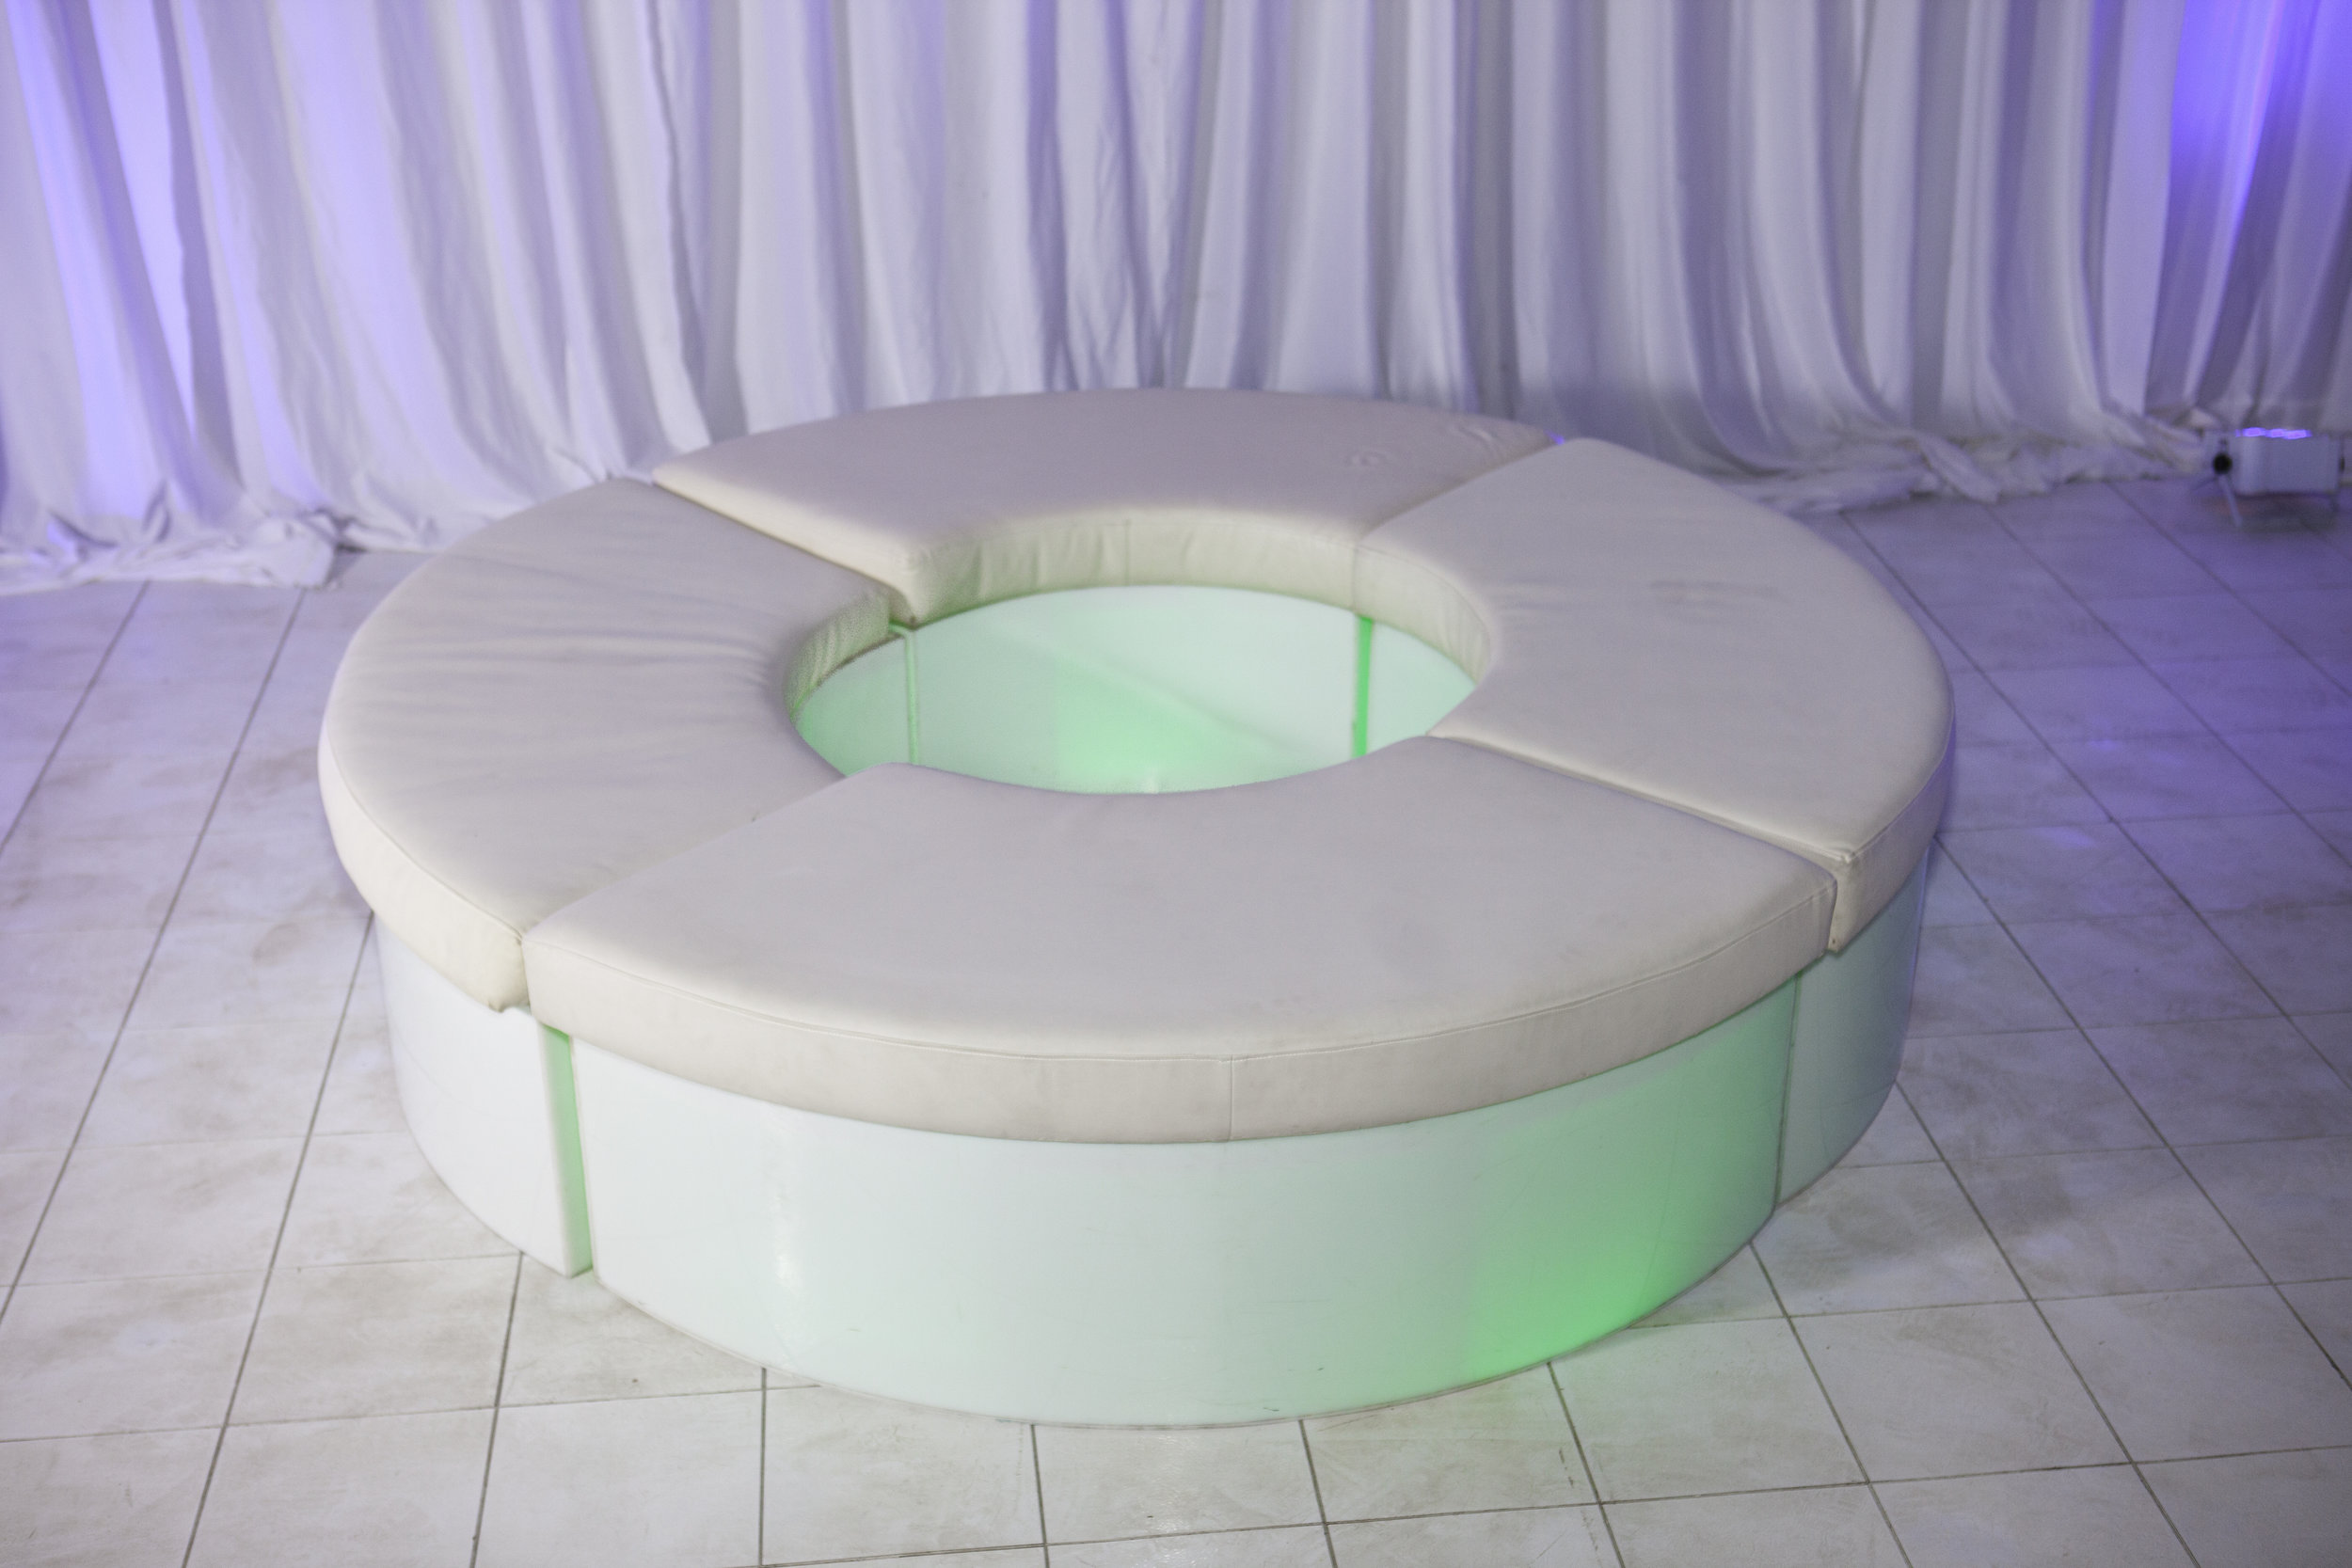 Benches- Circular Benches With LED Light_3.jpg